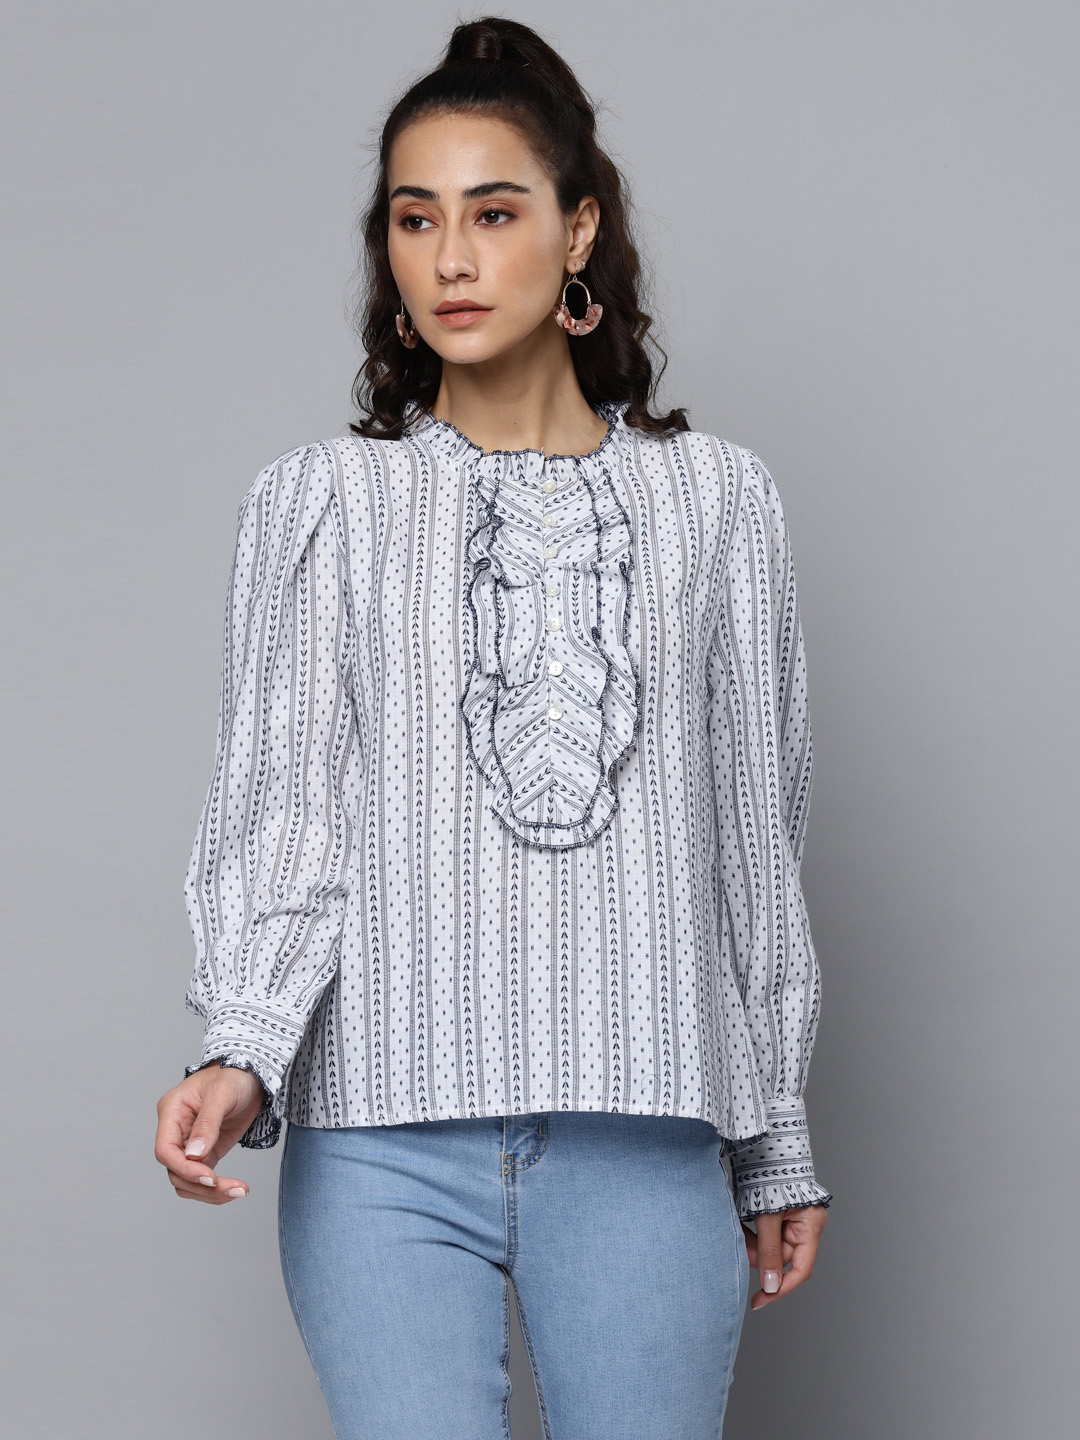 Cotton Jacquardc Frill Full Sleeves Top